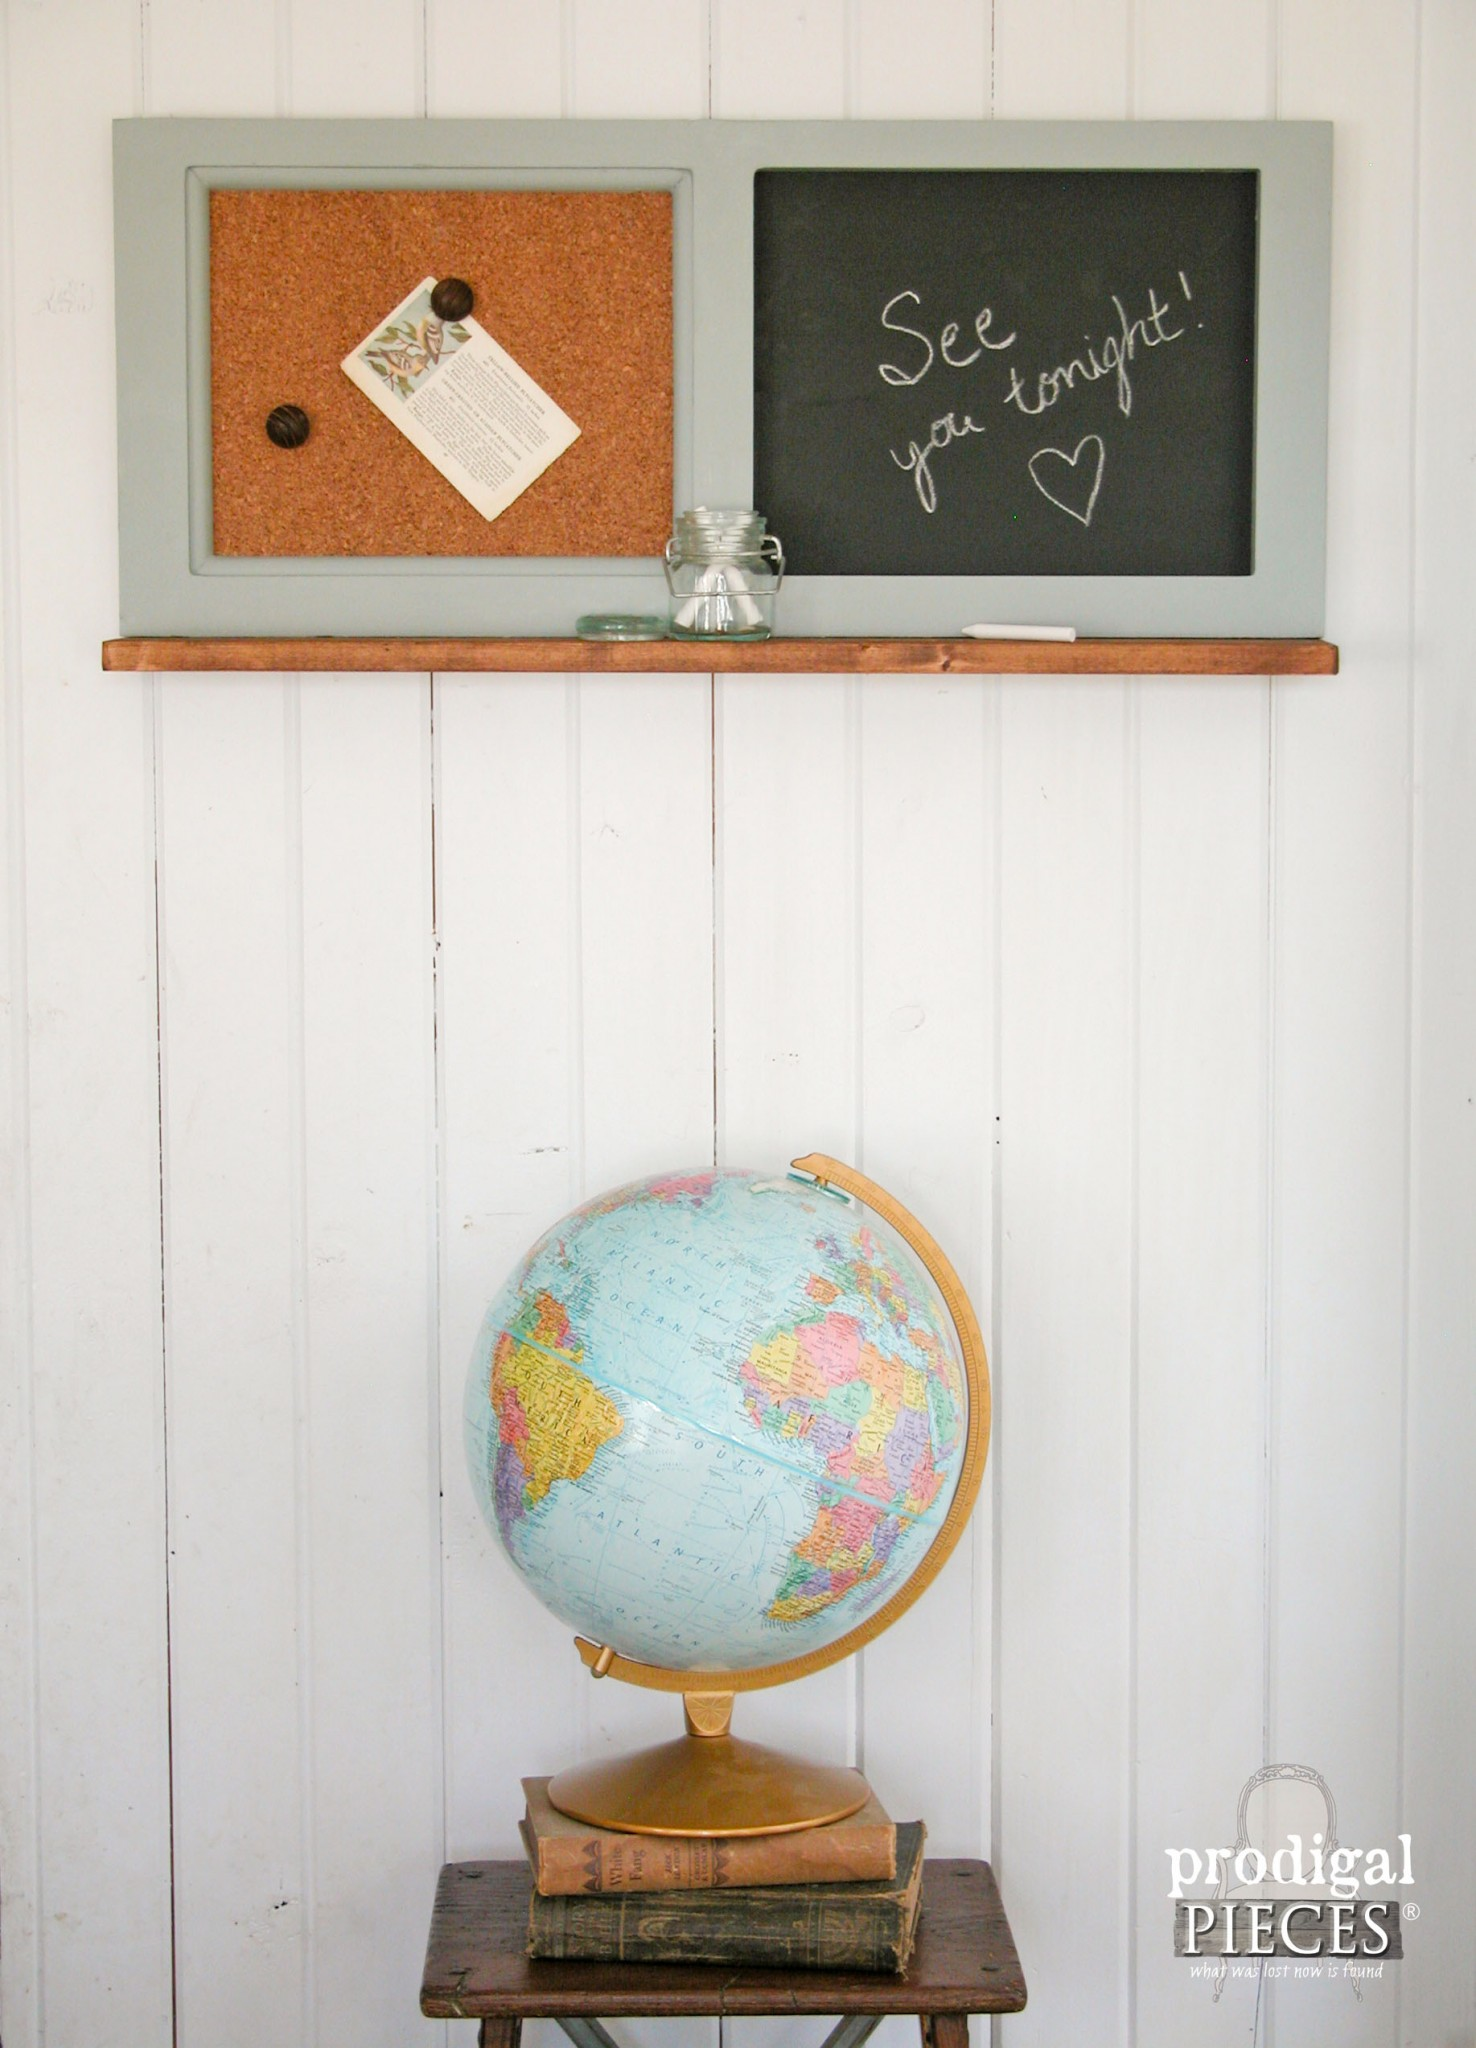 Message Center Created from Repurposed Kitchen Cabinets by Prodigal Pieces | www.prodigalpieces.com